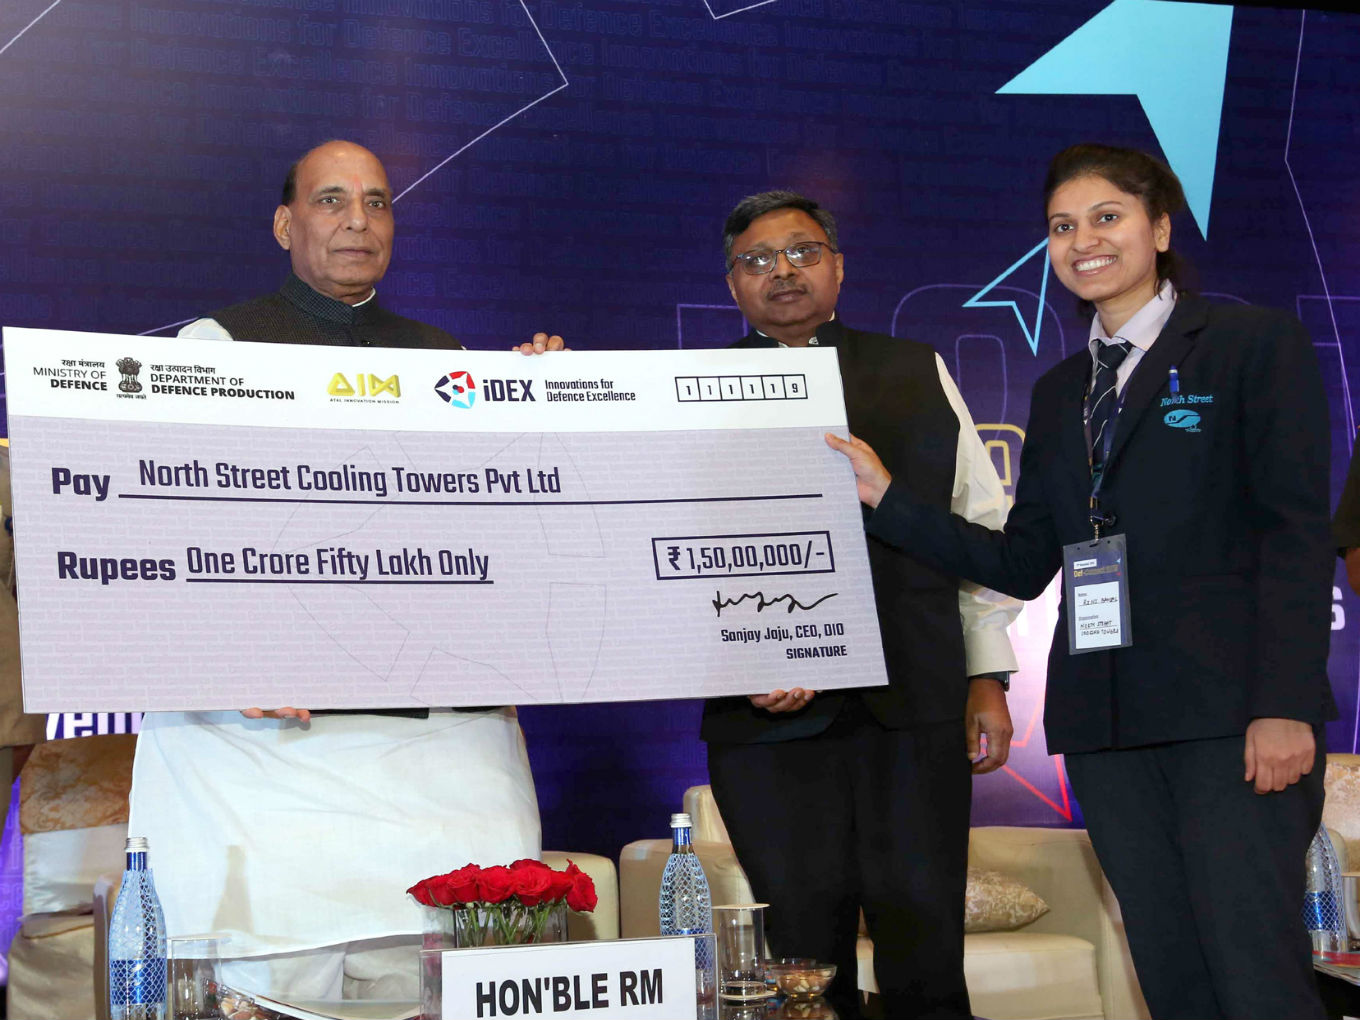 Startup Policy Update: India's Startup Awards, Defence Tech Fund & More